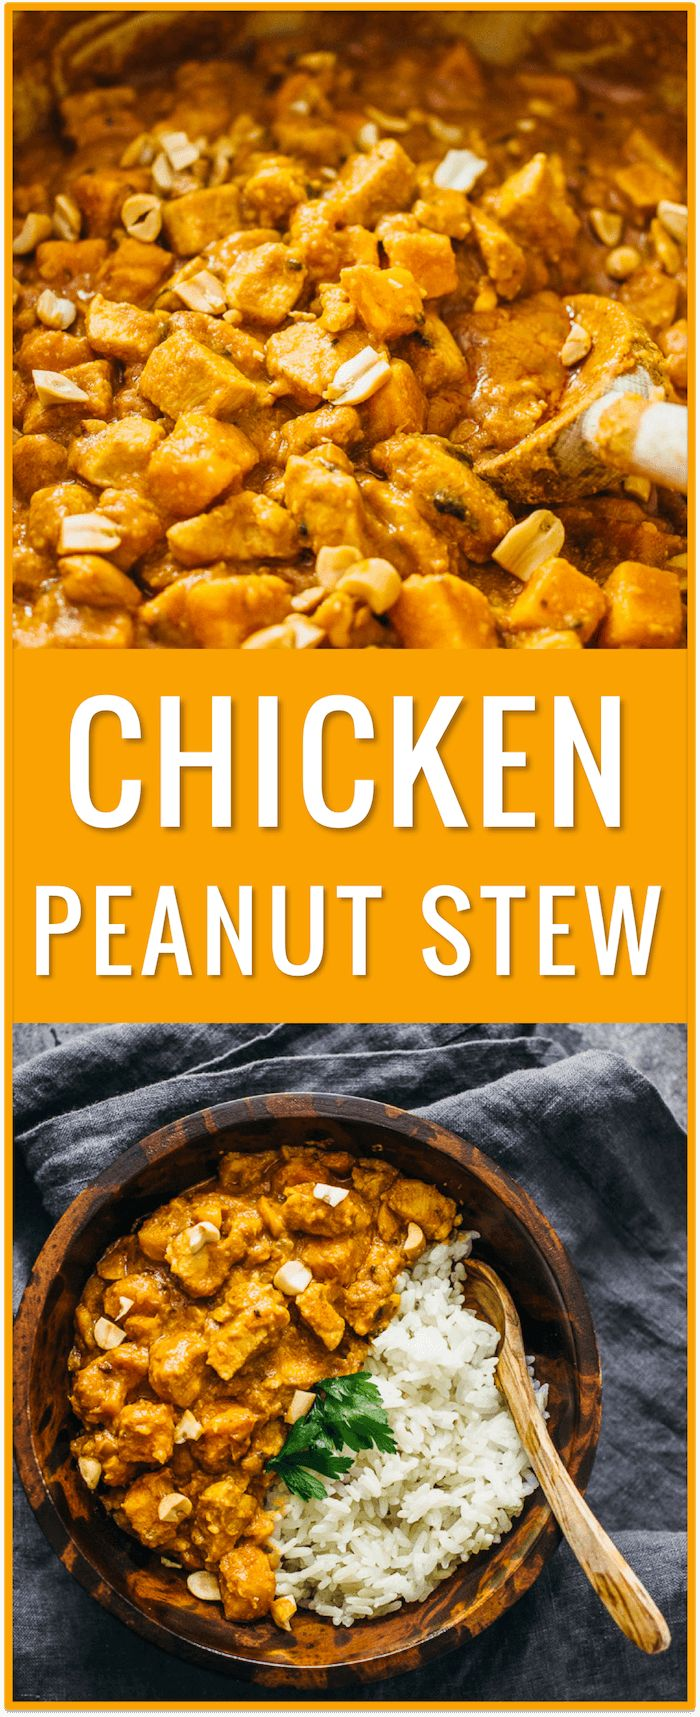 chicken peanut stew with sweet potato recipe, african chicken peanut stew, soup, easy recipe, peanut butter, peanut sauce, dinner, comfort food, one pot, one pan, lunch via @savory_tooth